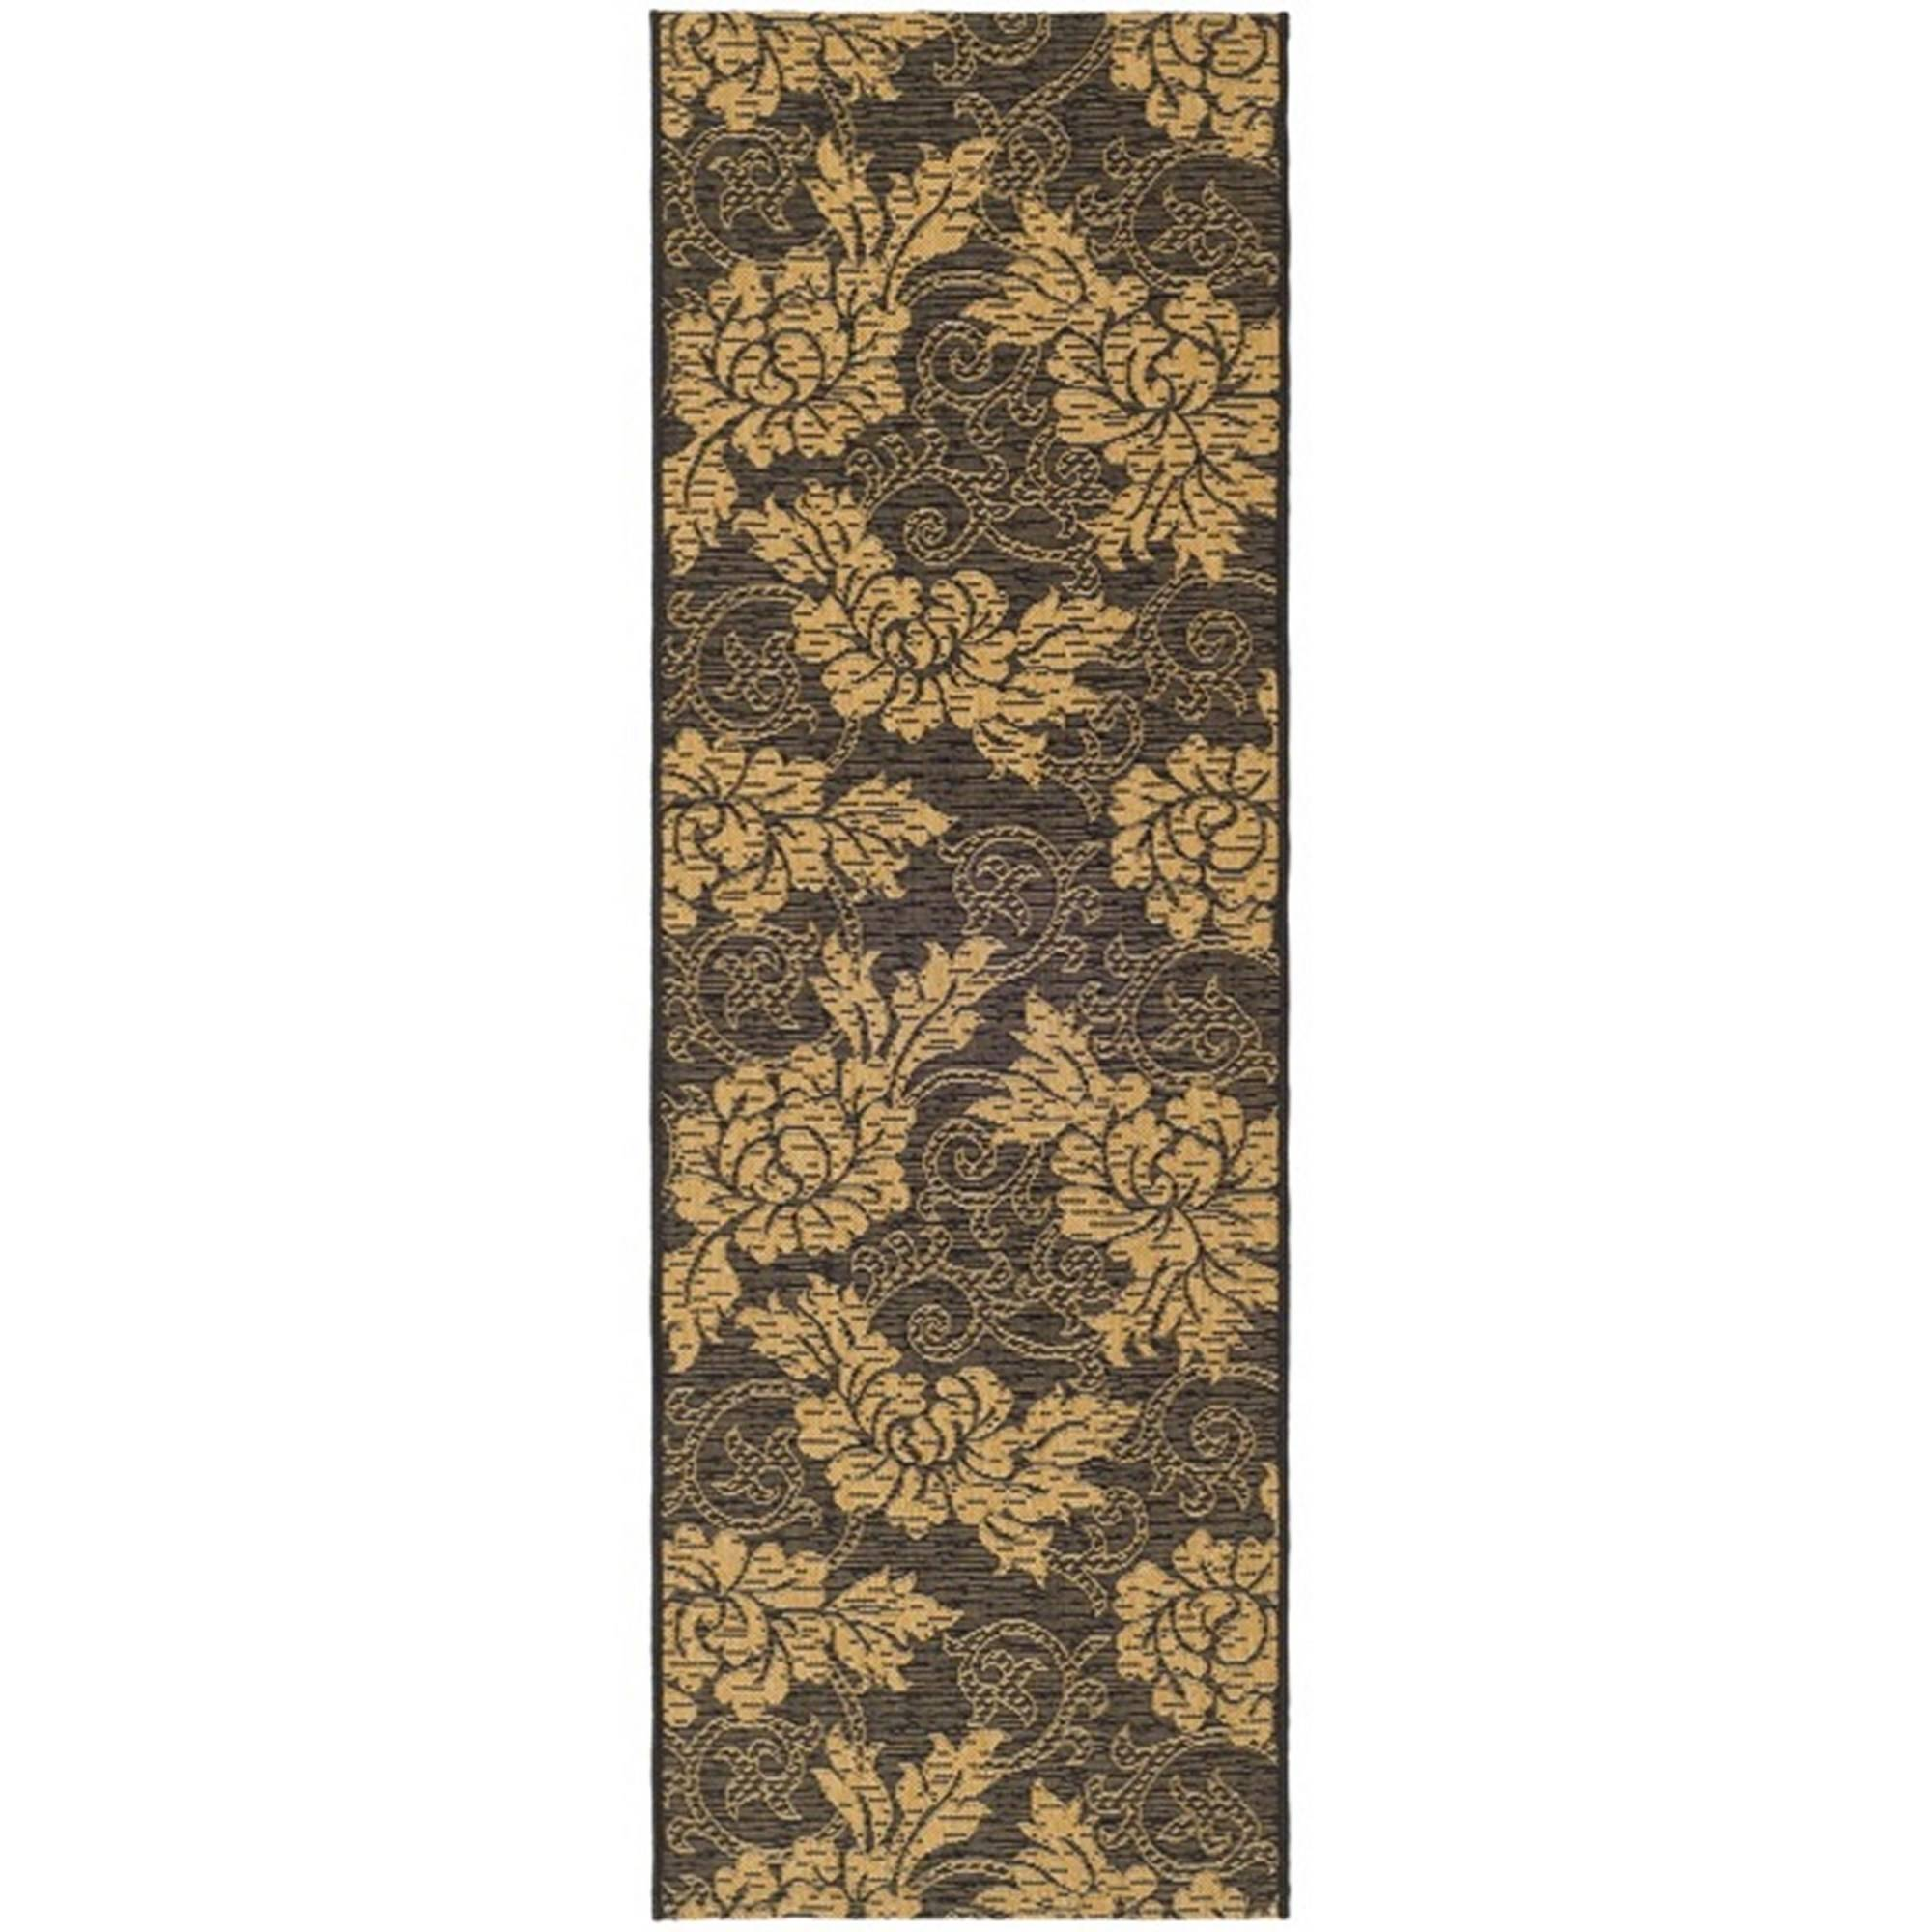 Safavieh Courtyard Adrian Power-Loomed Indoor/Outdoor Area Rug or Runner